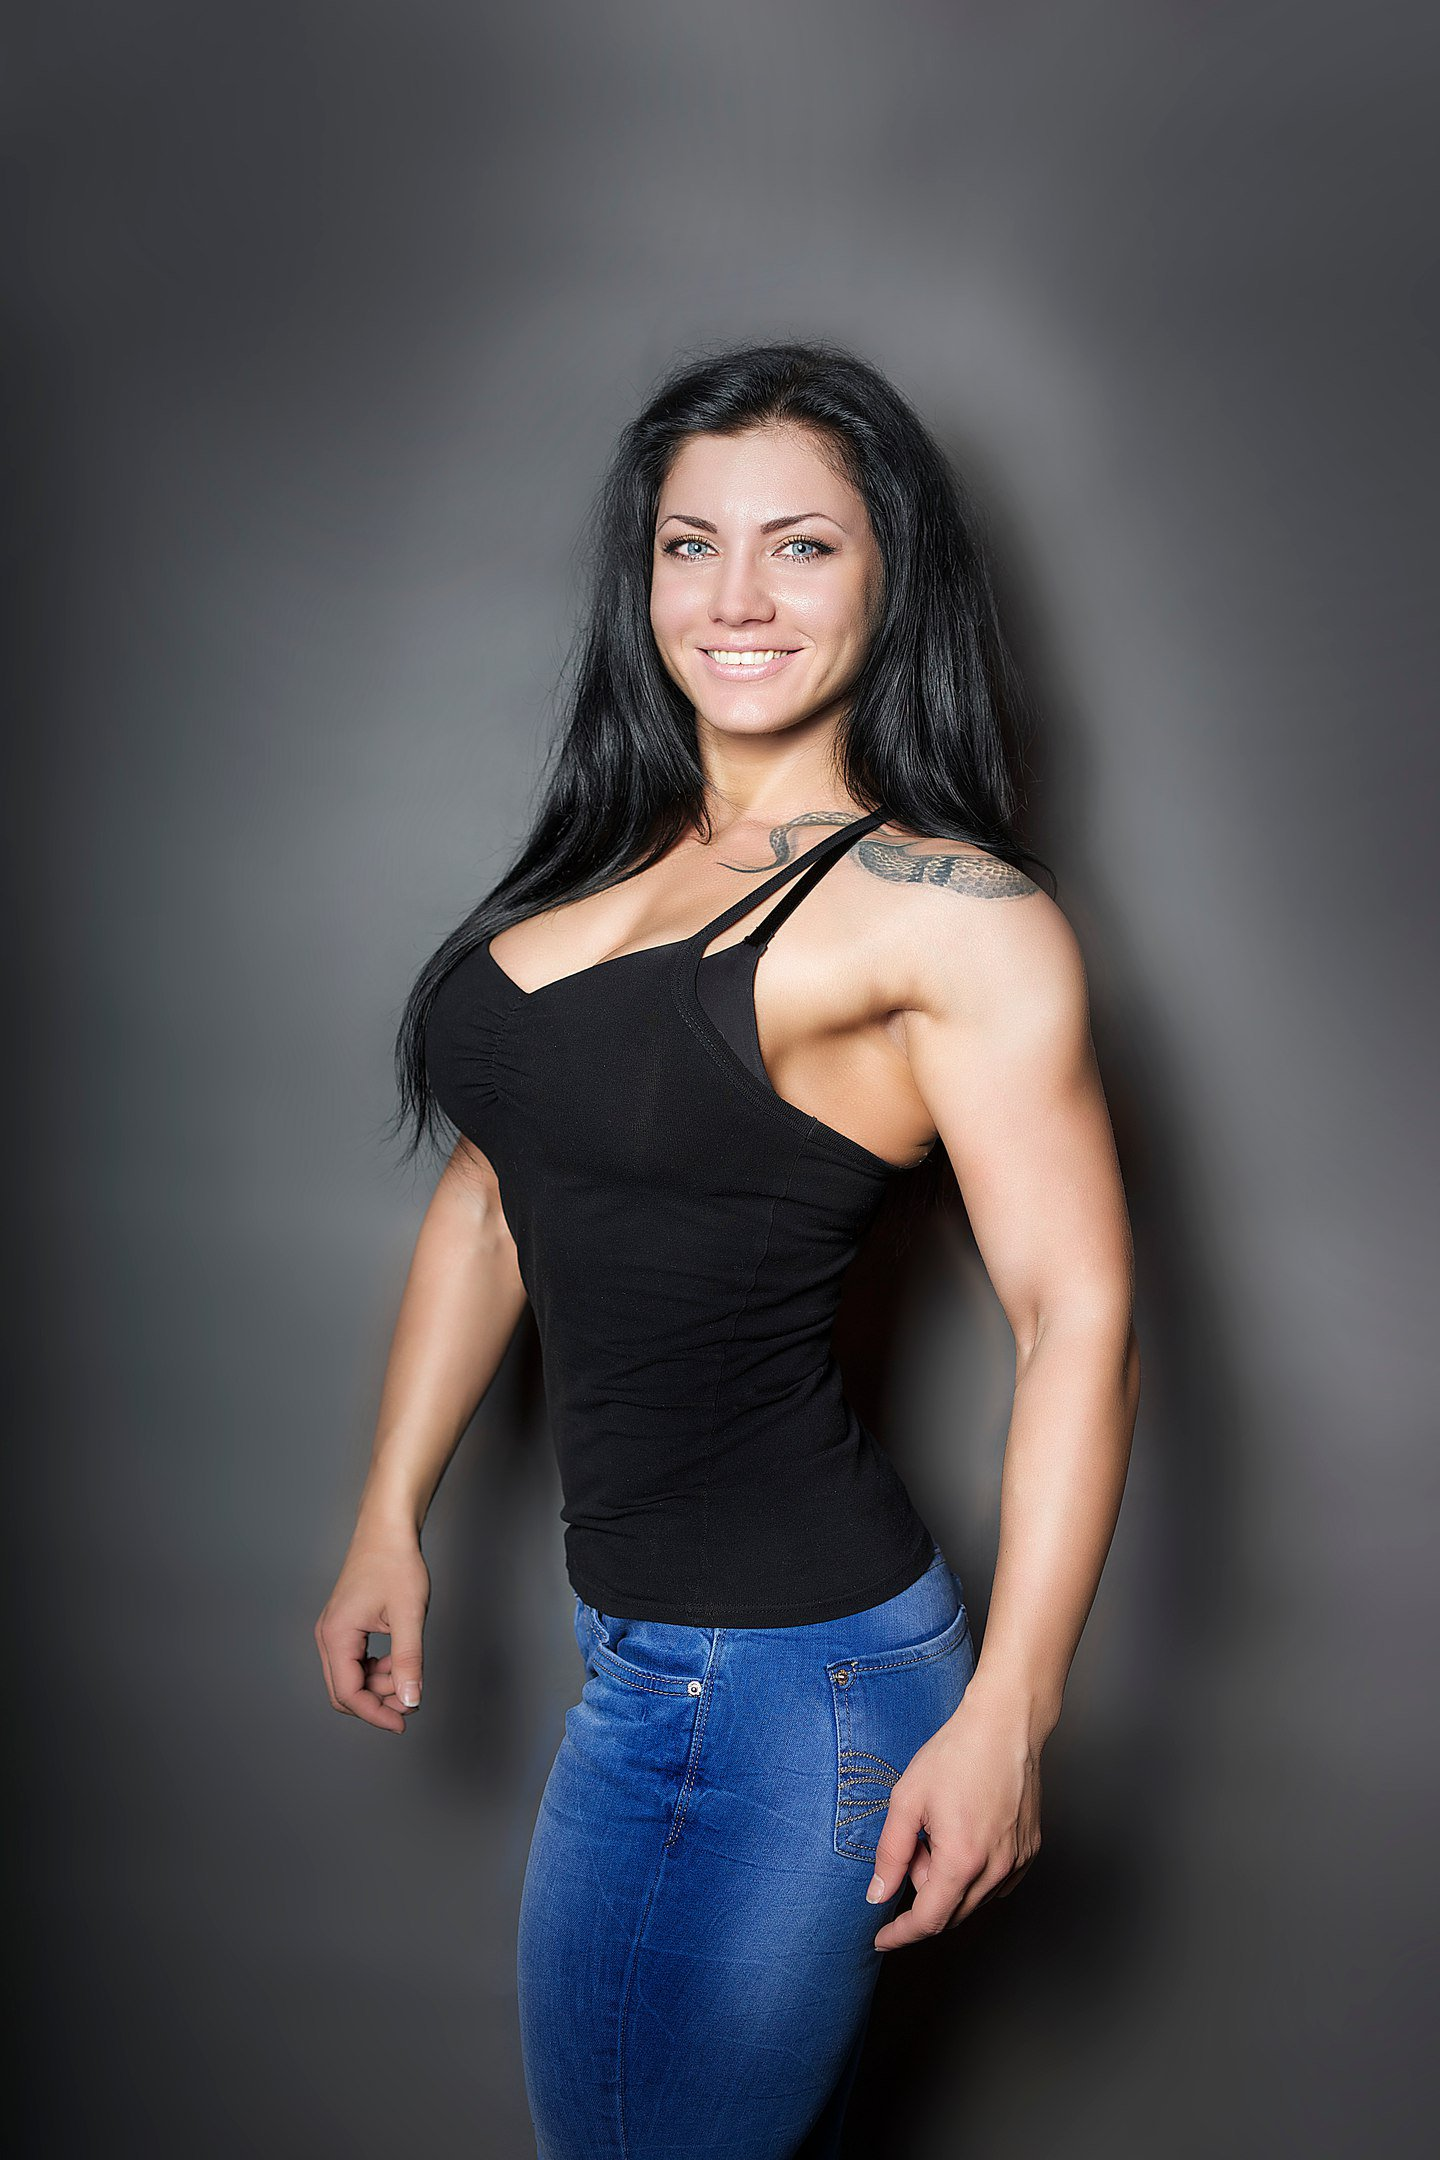 Muscle Girl Armwrestling - YouTube